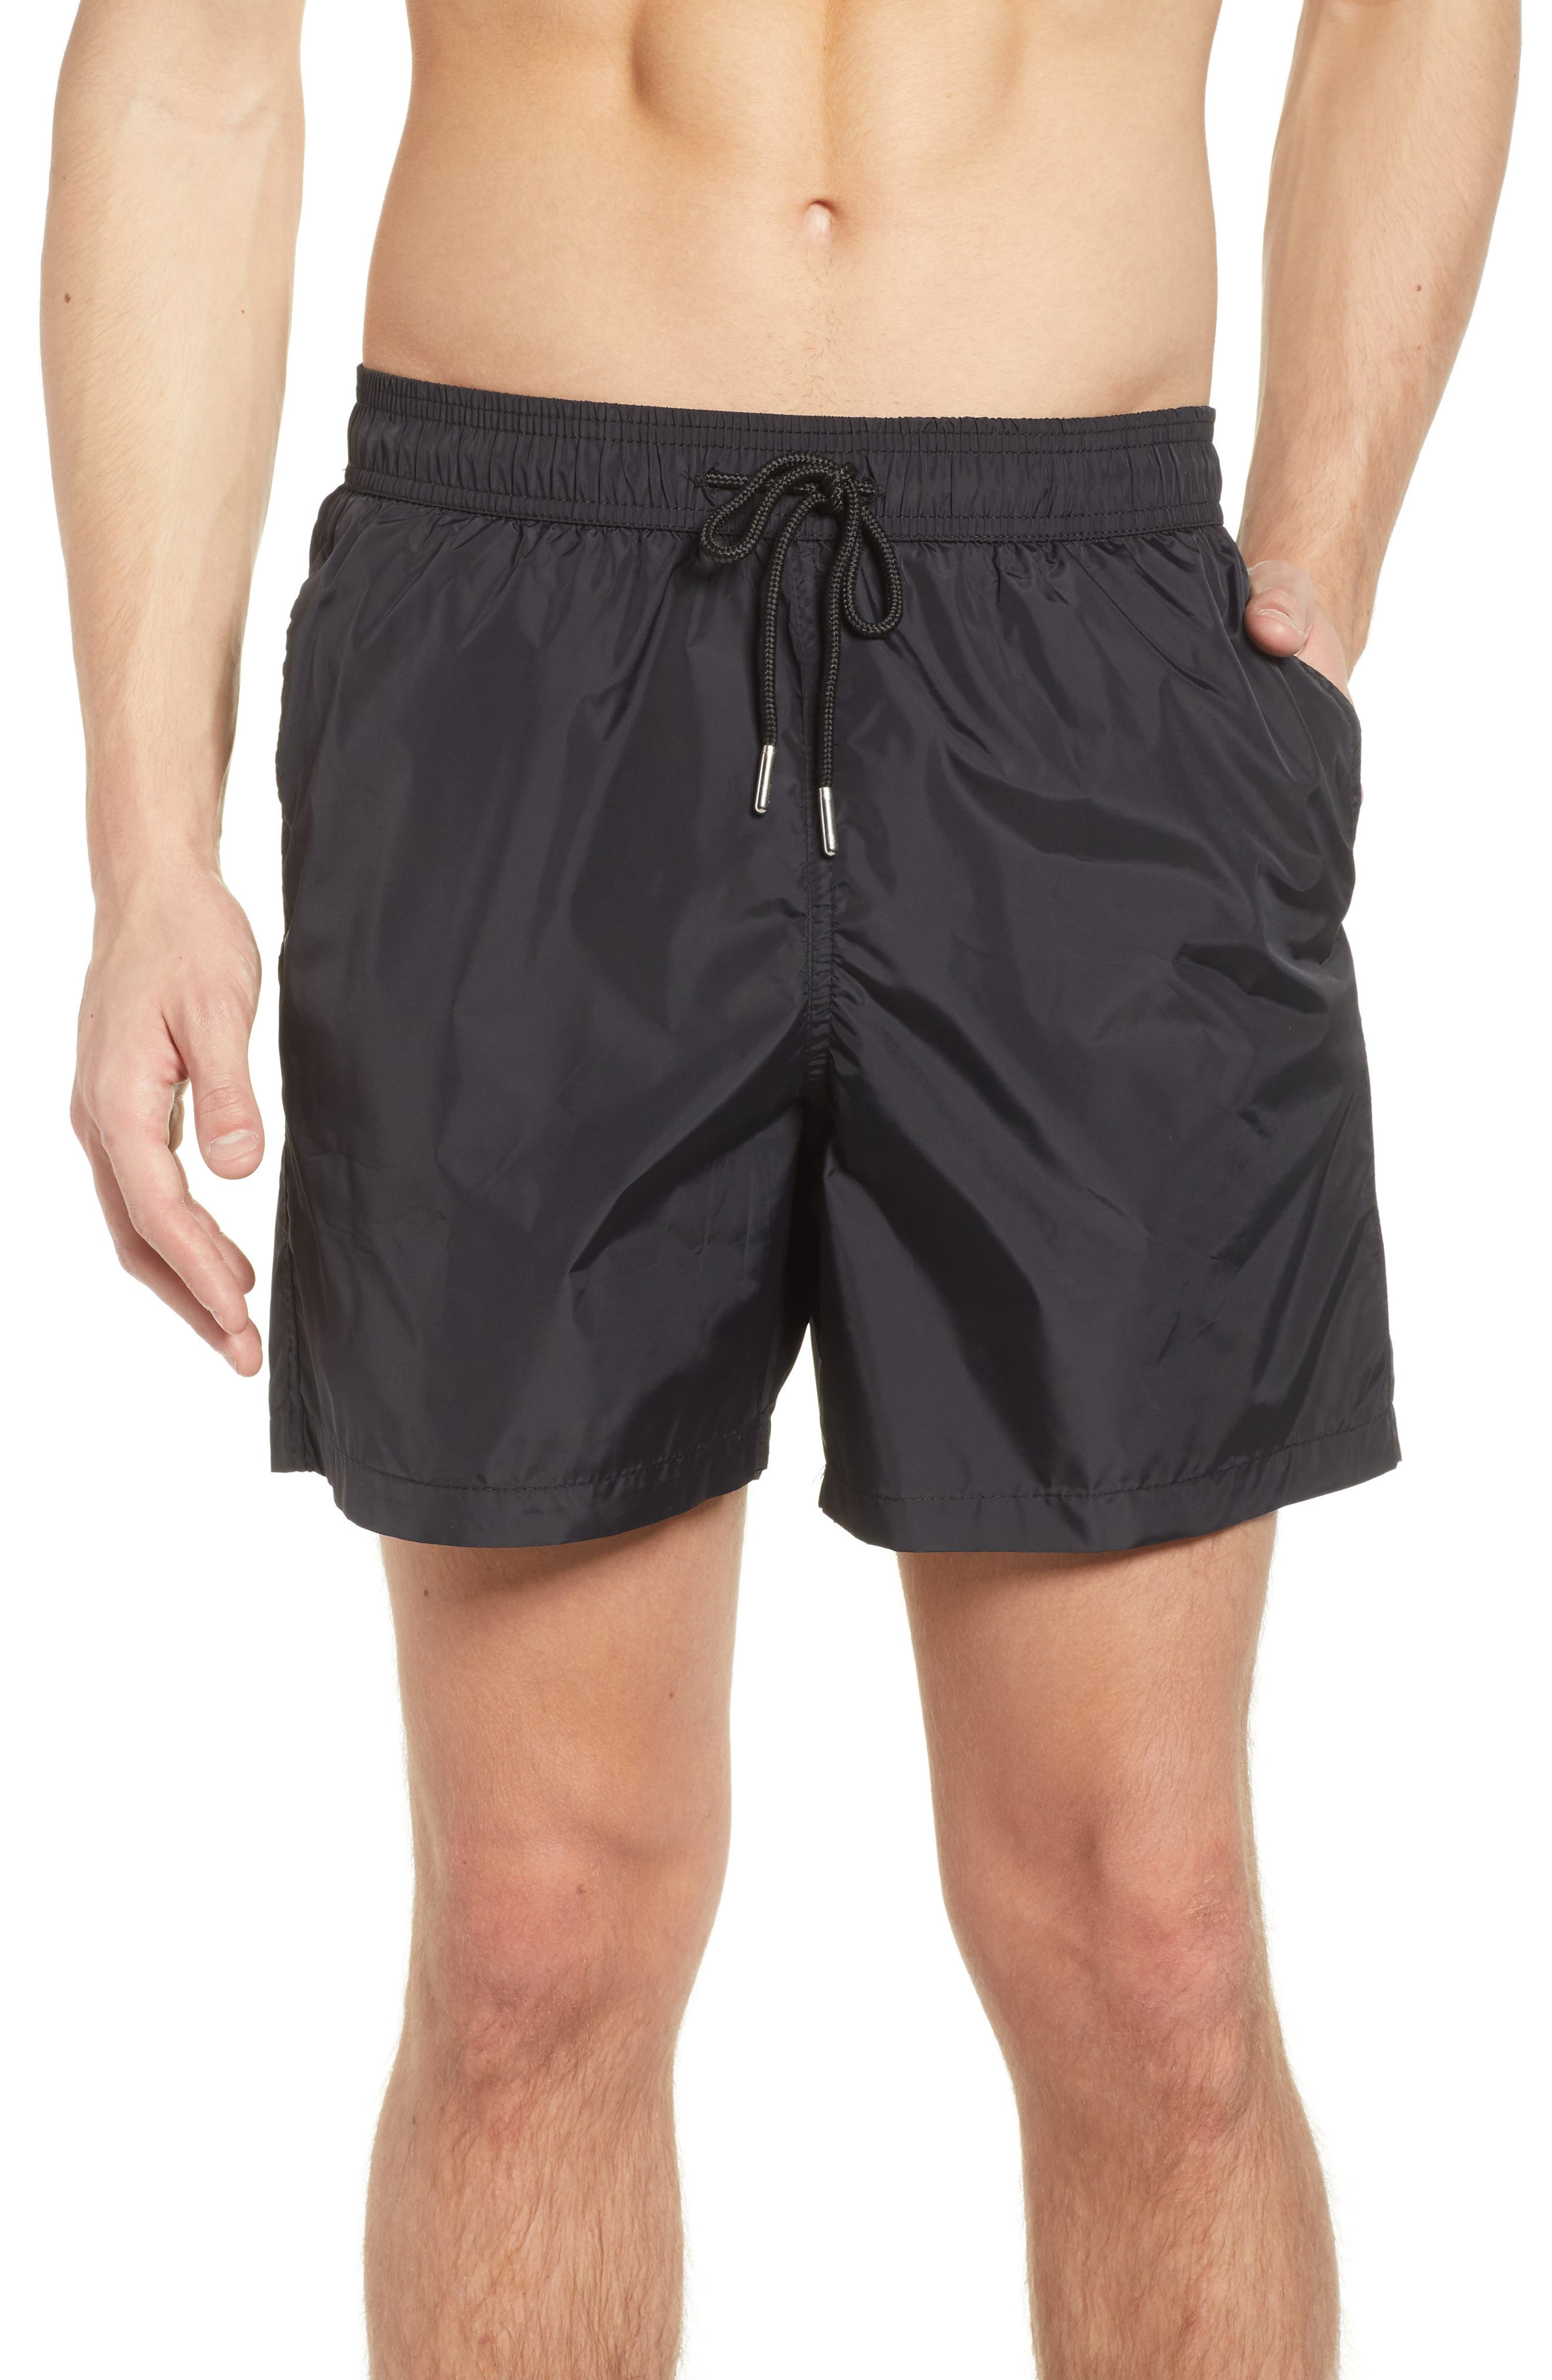 Swim Trunks,                             Main thumbnail 1, color,                             Black /Turquoise